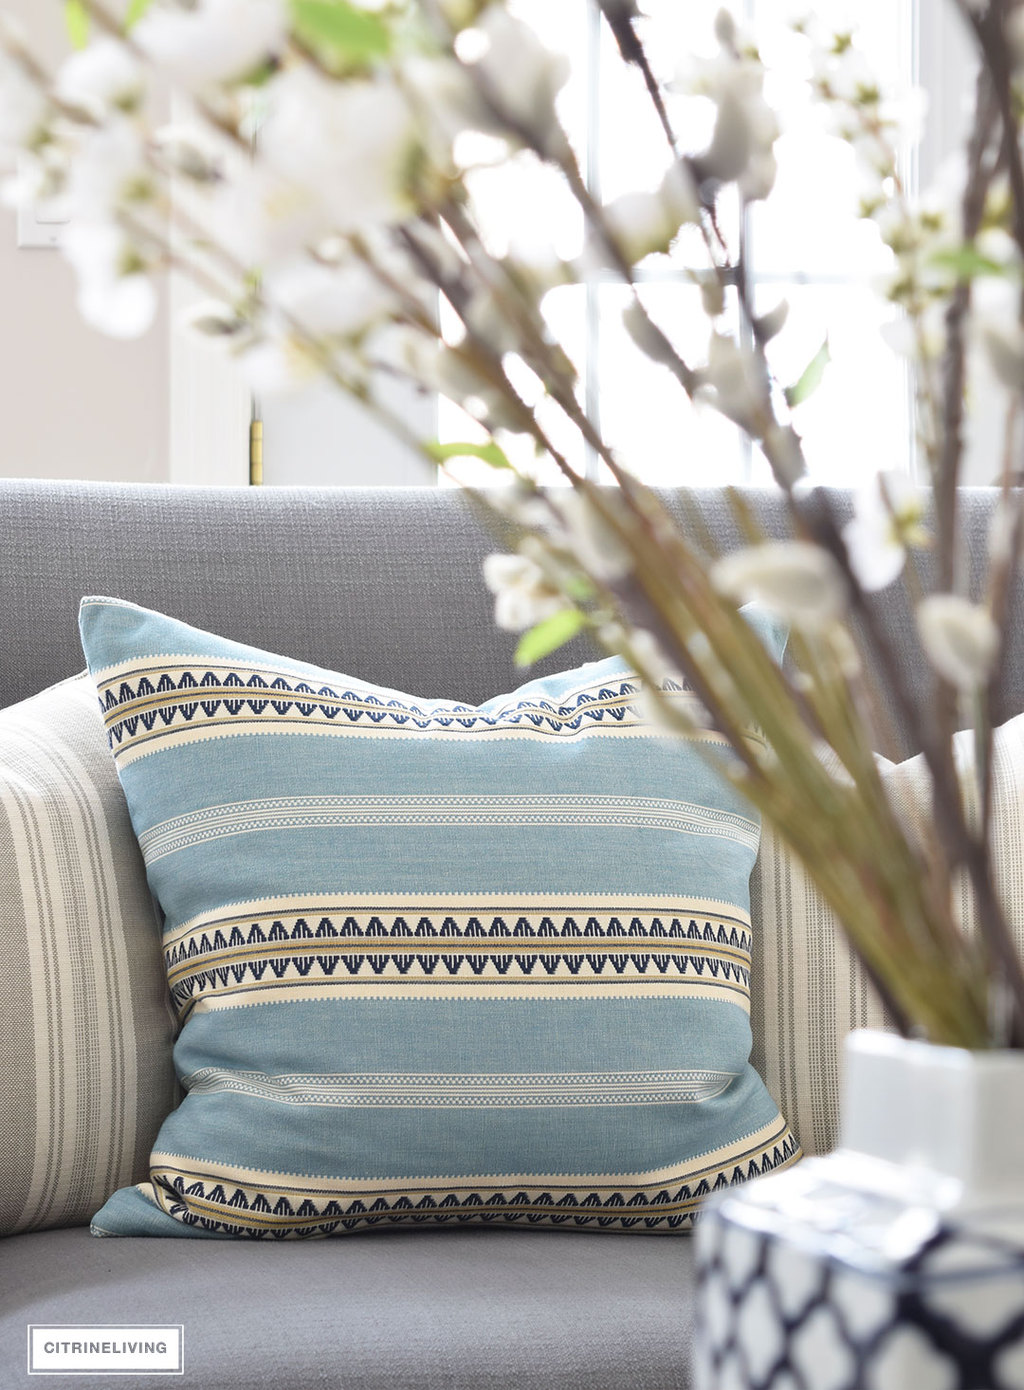 Henderson Stripe pillow by Tonic Living - a gorgeous stripe in blue that will suit any space and bring a warm sophisticated touch.